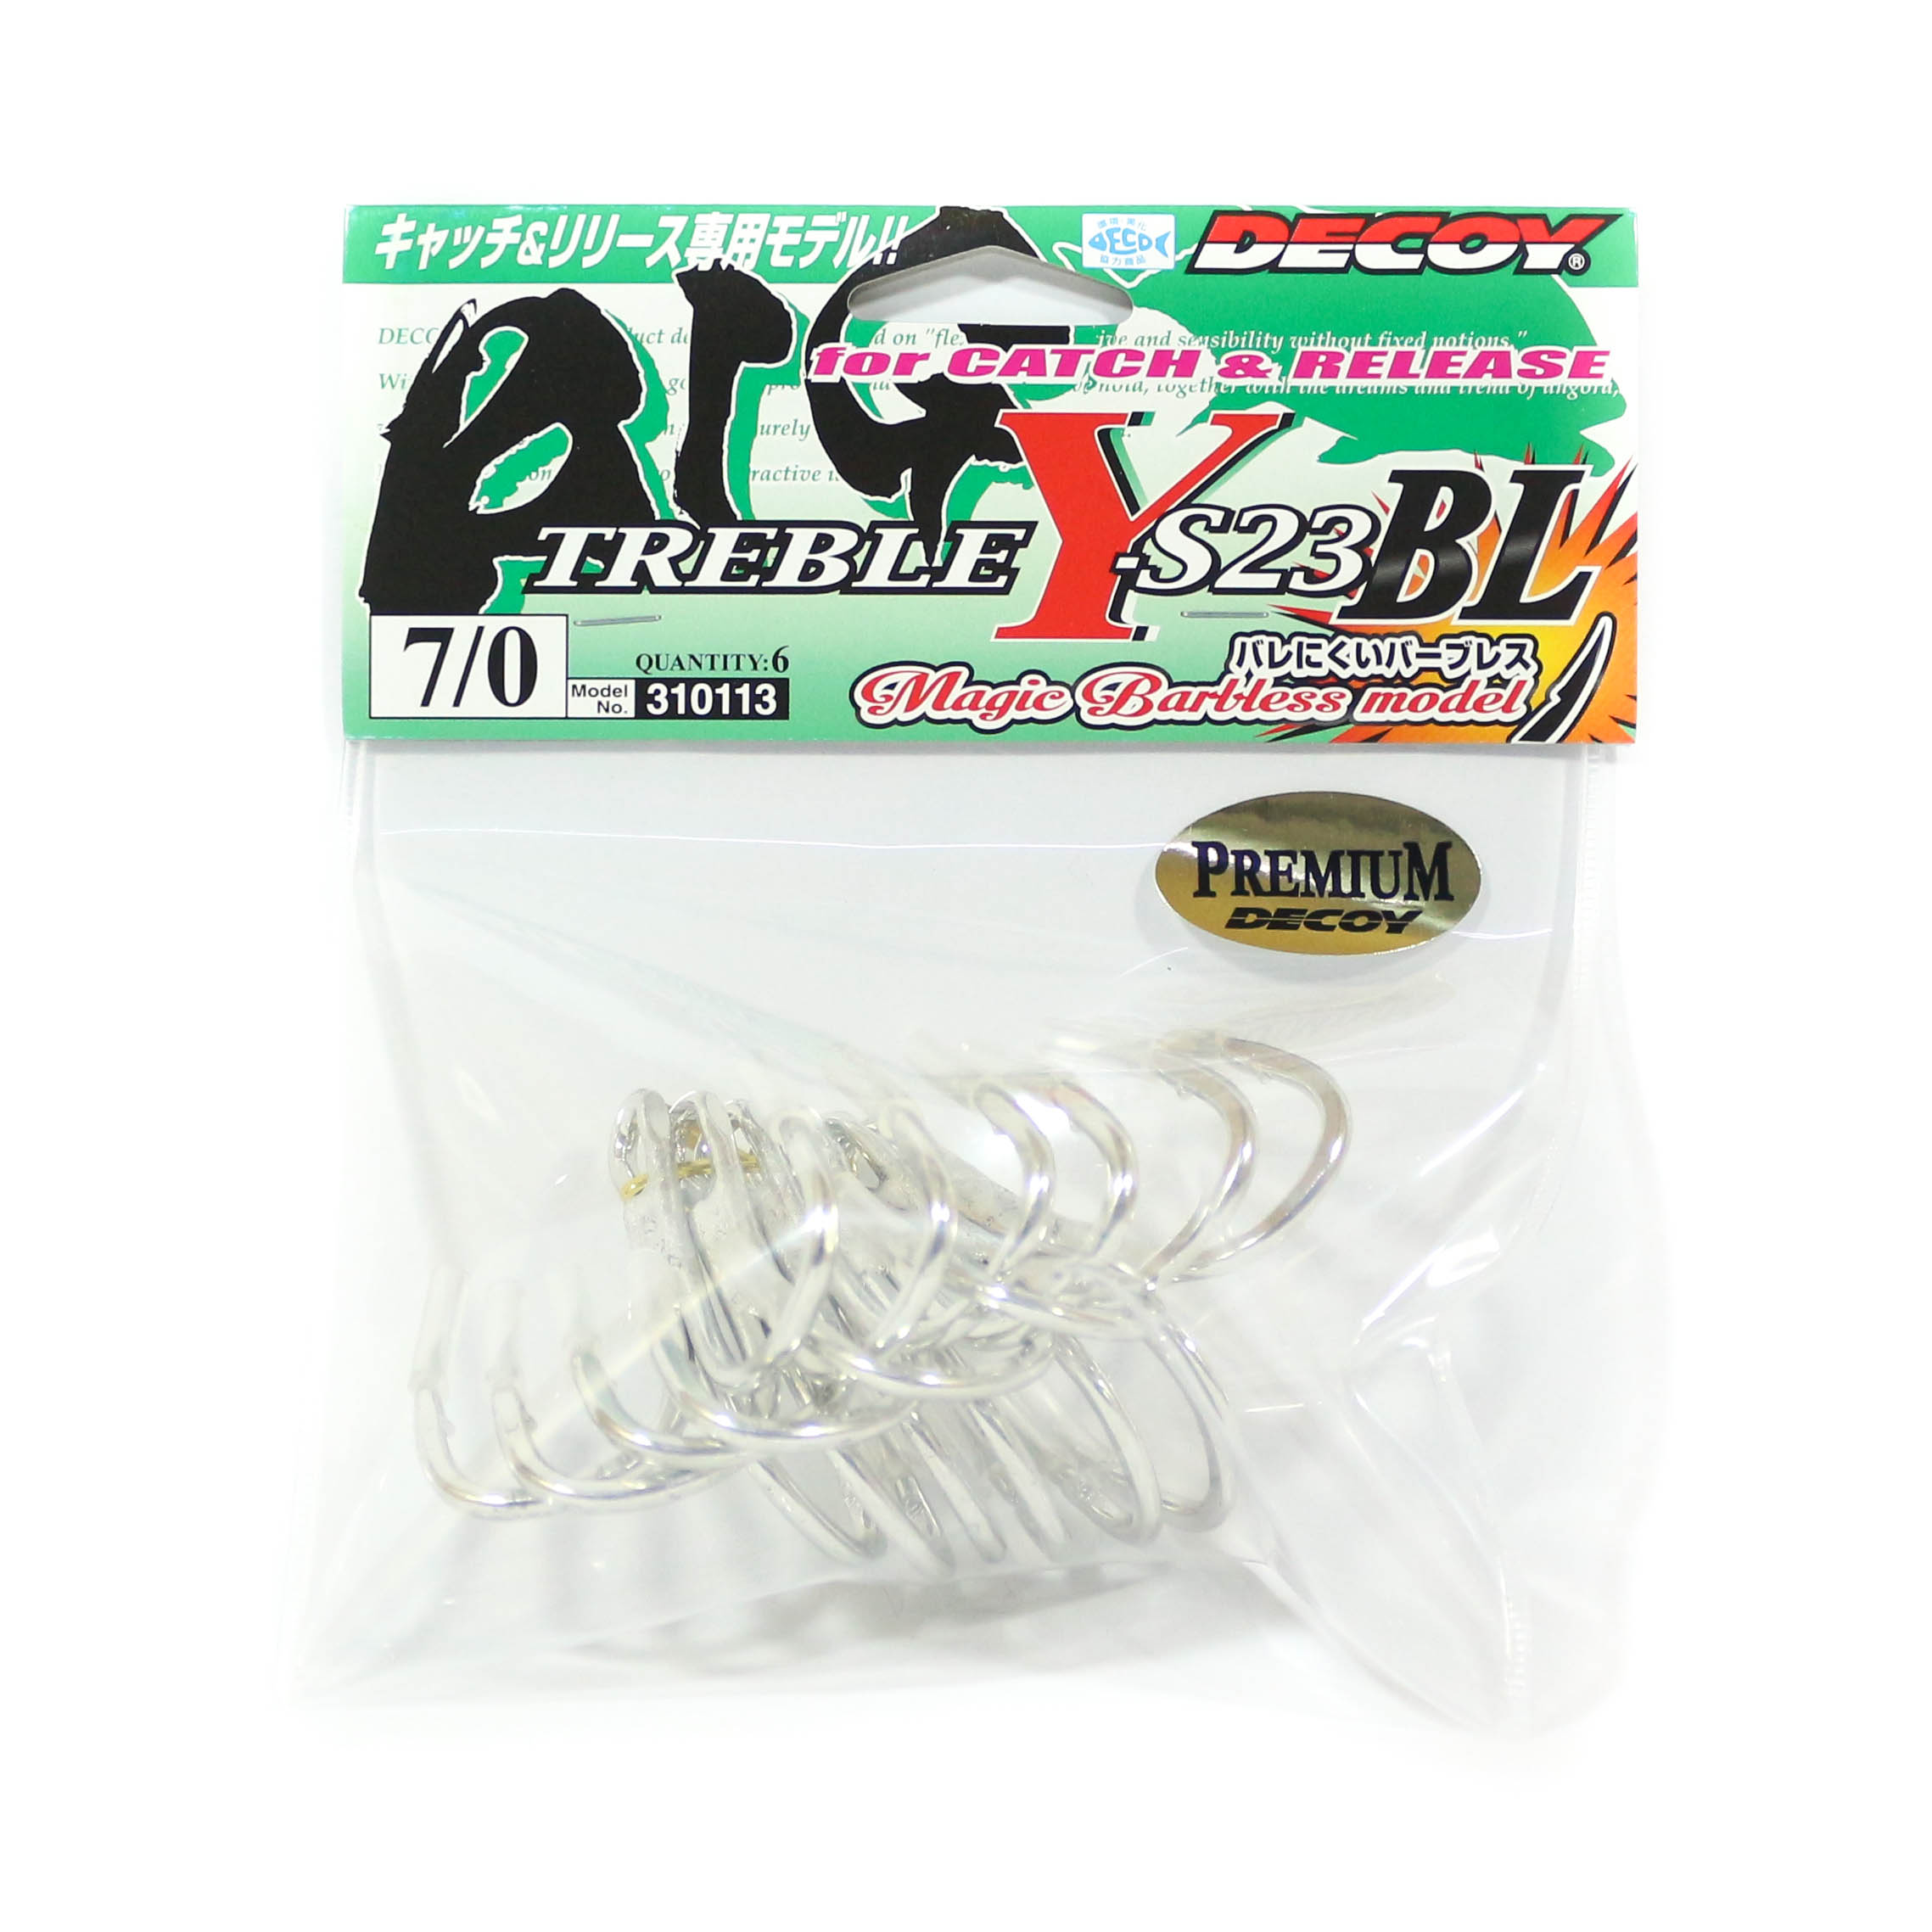 Decoy Y-S23 BL Treble Hook Heavy Duty Barbless Big Size 7/0 (0113)